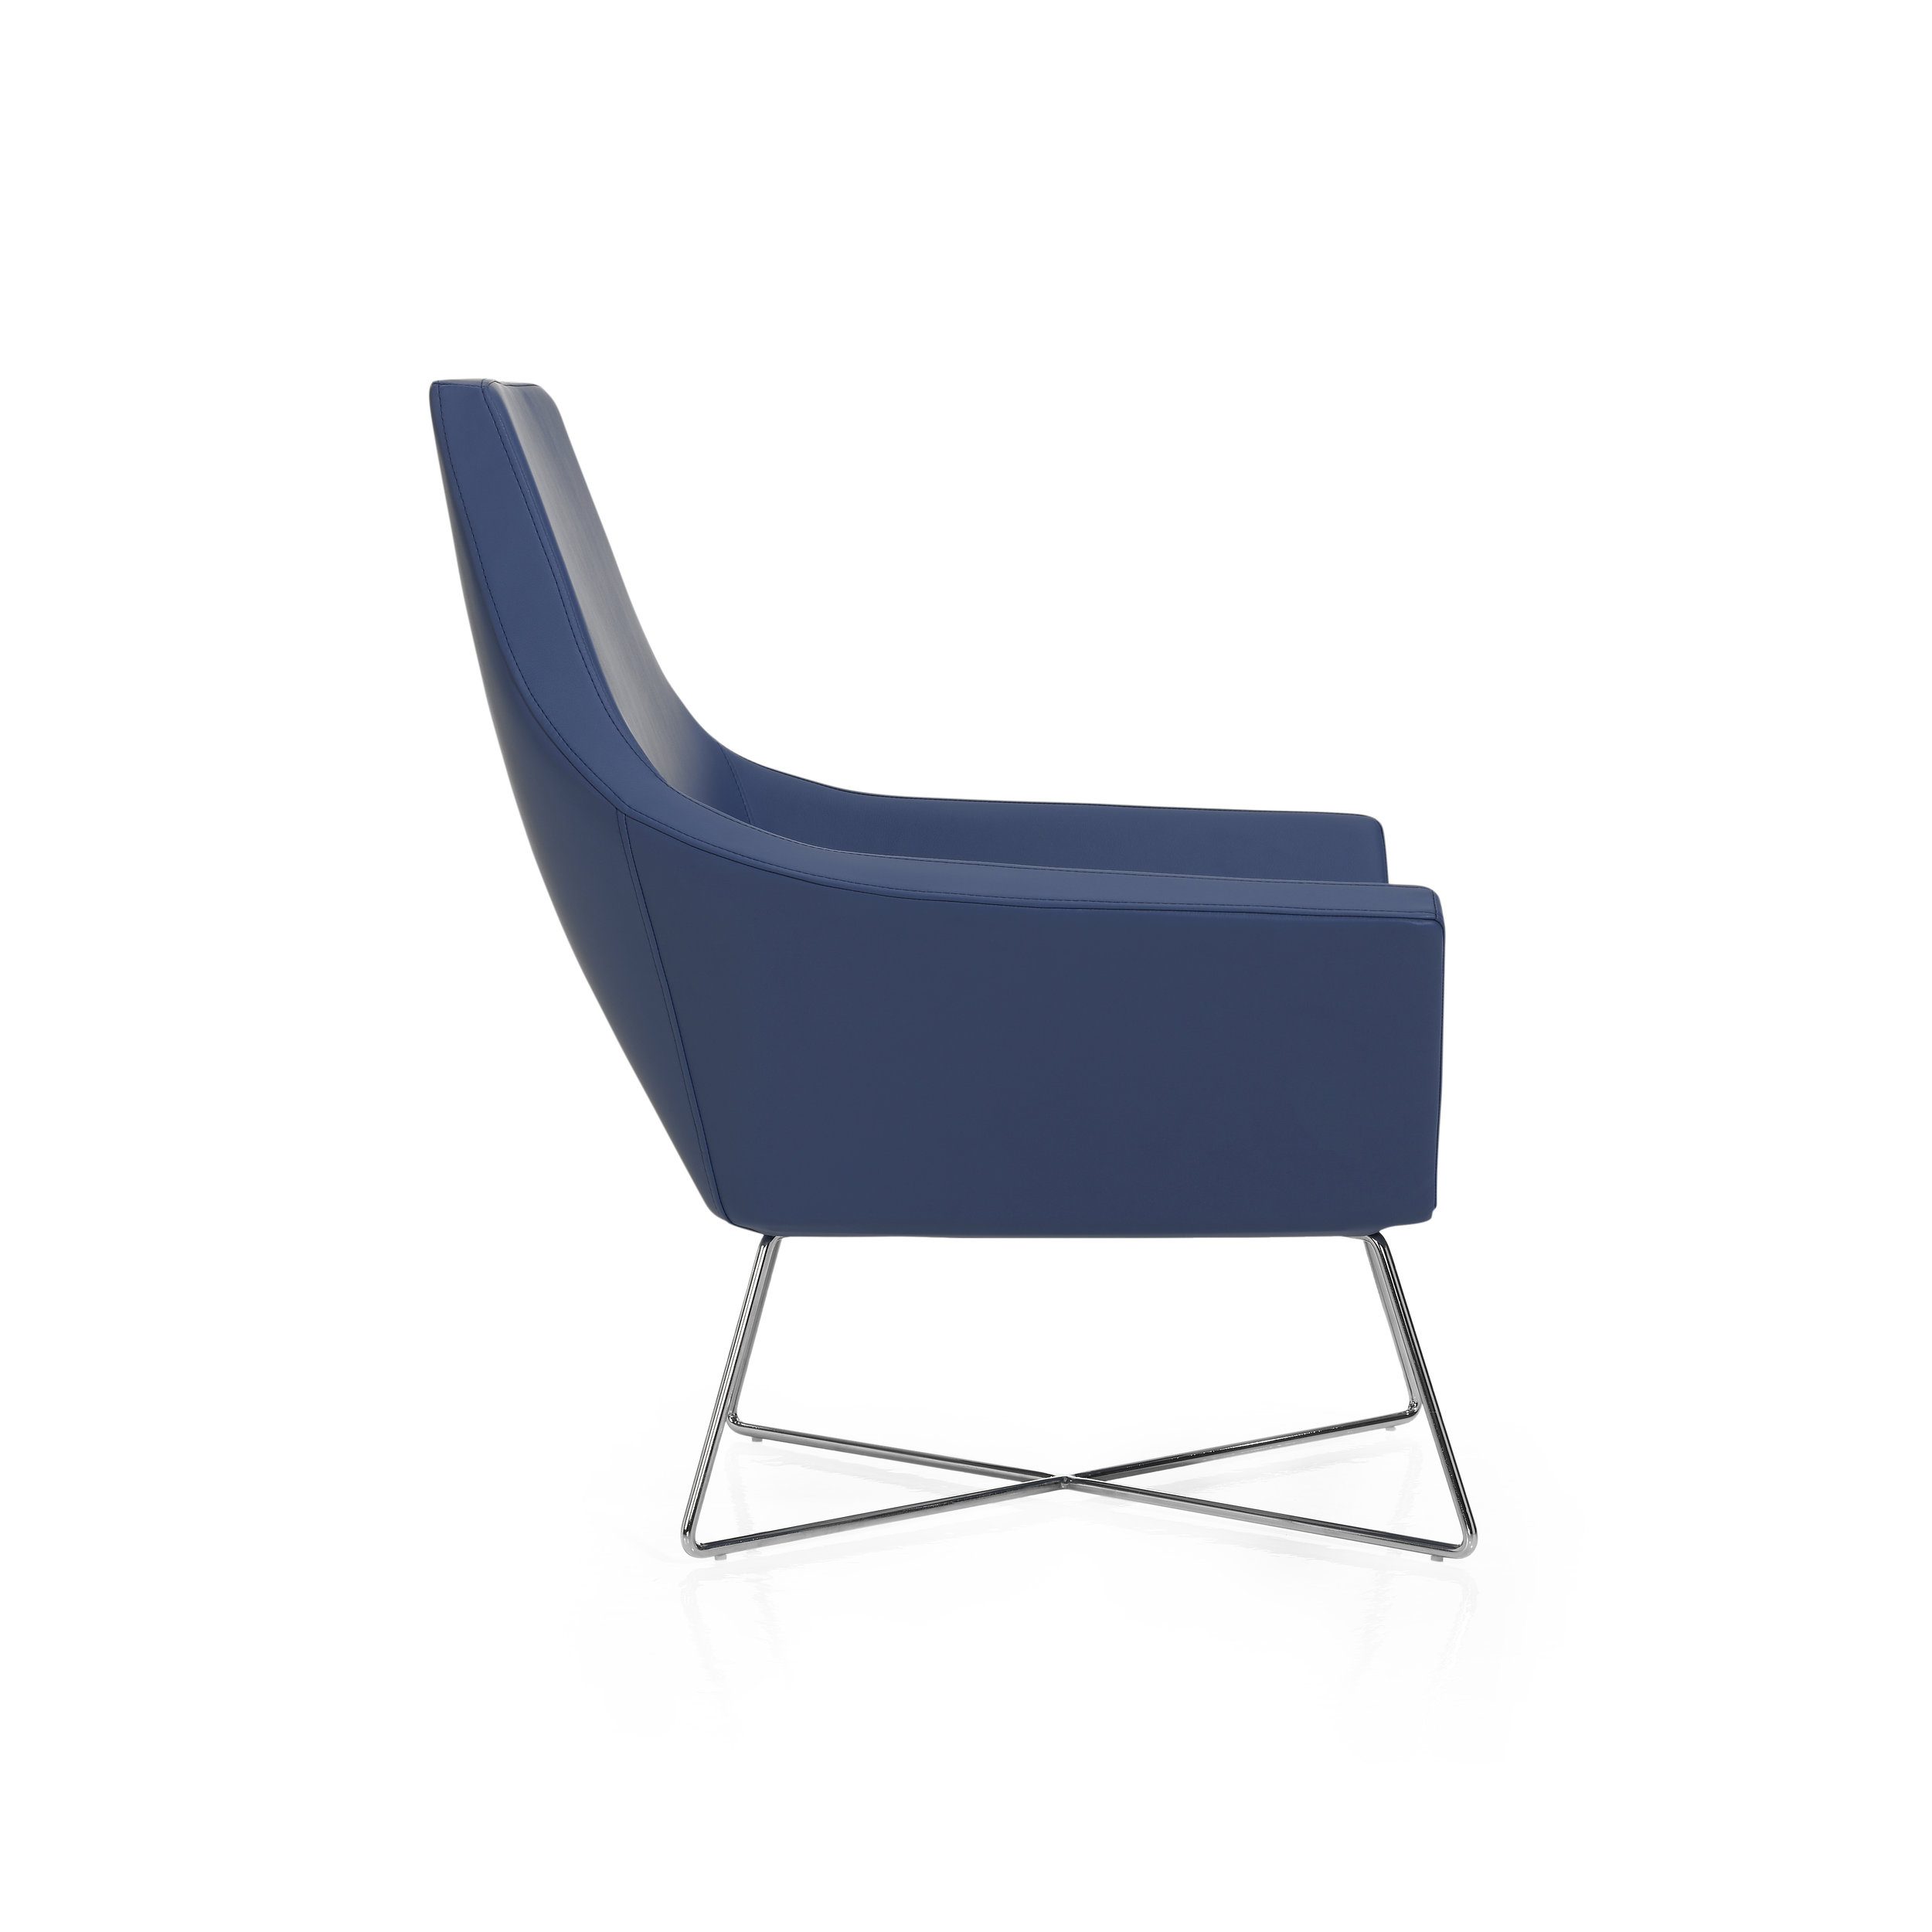 - ANAK UPLIFTS YOUR SPACES.Clean, modern lines evoke peaceful dealings within your staff. Harmonious outlines that feel personal and coveted. Rich colors awaken maximum creativity and aesthetic satisfaction.